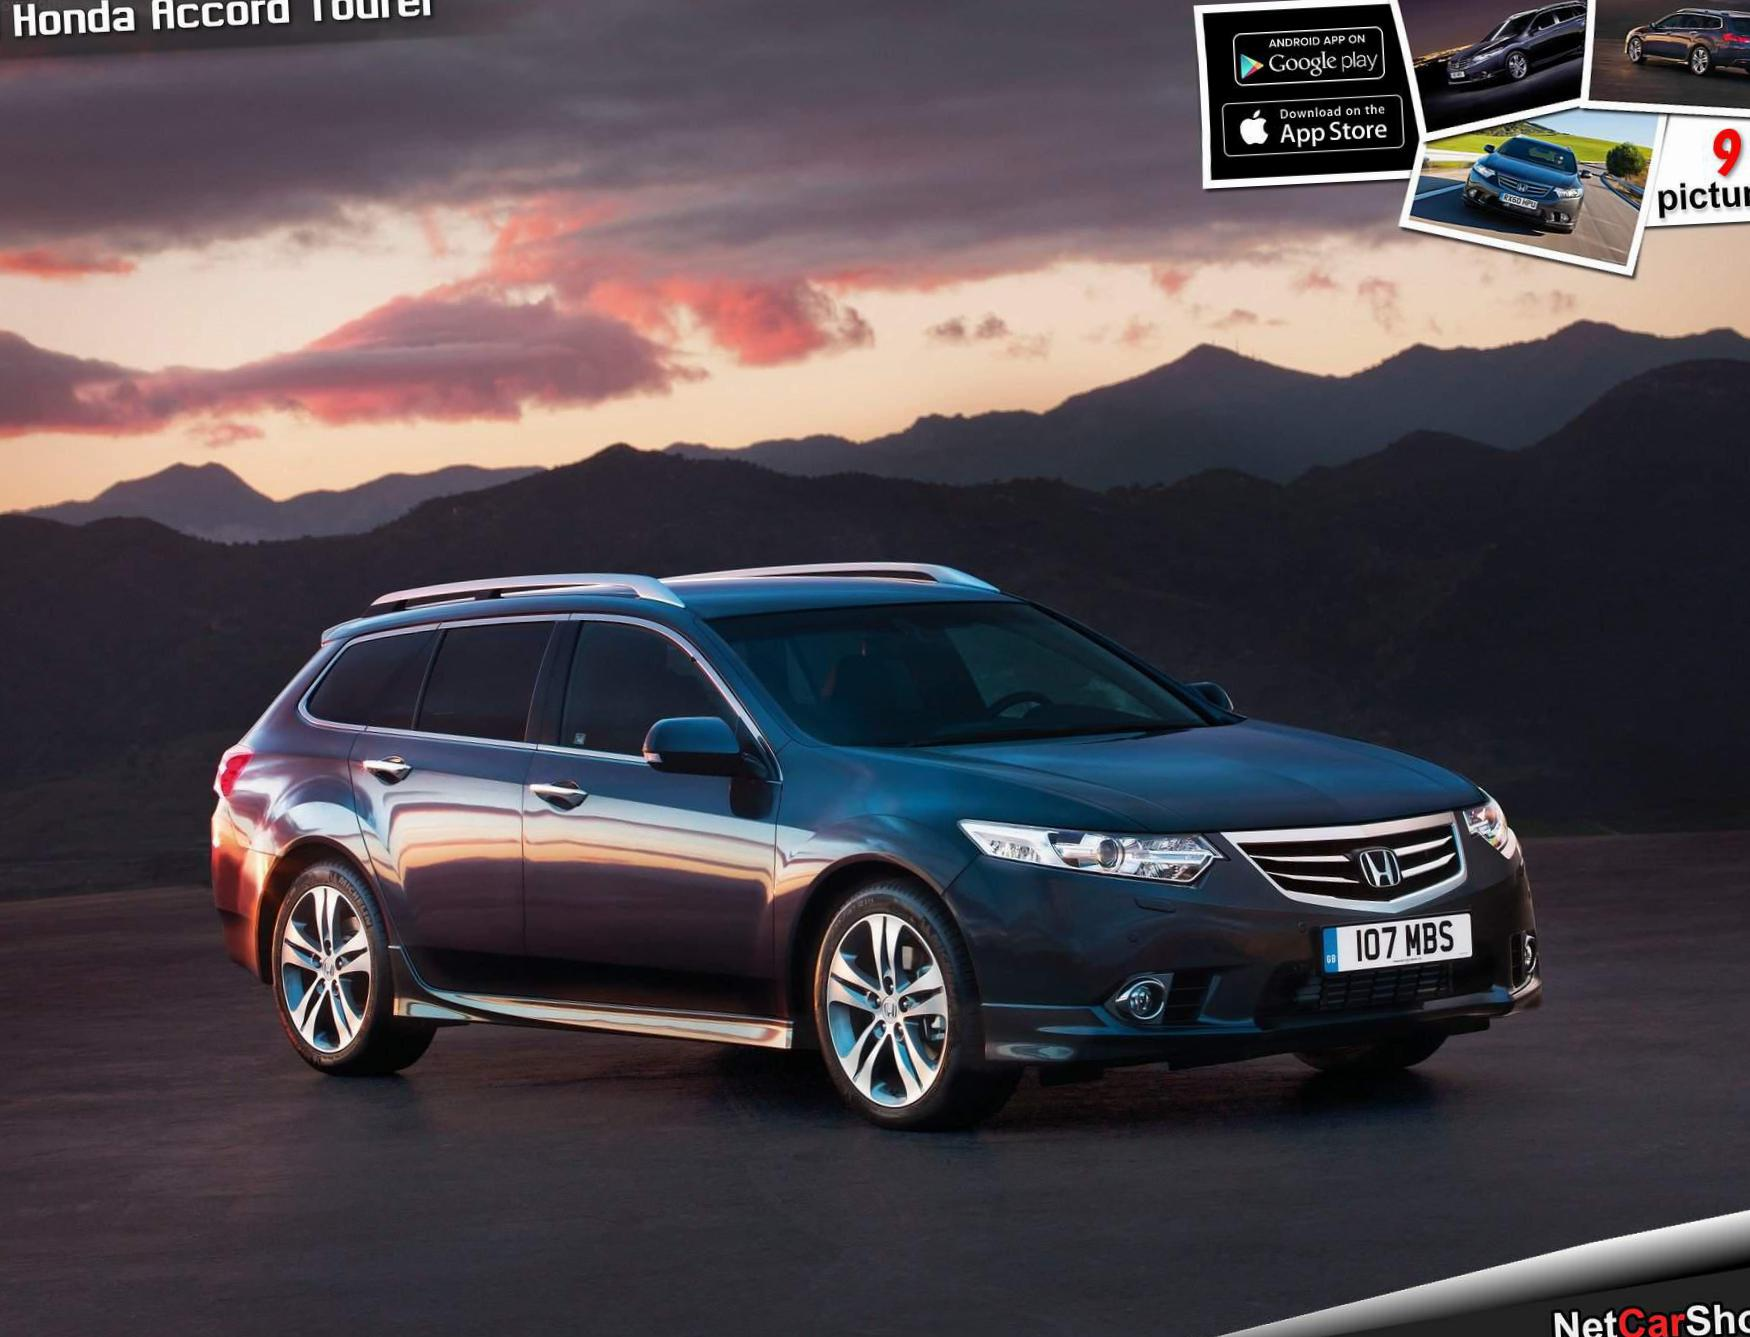 Honda Accord Tourer new sedan